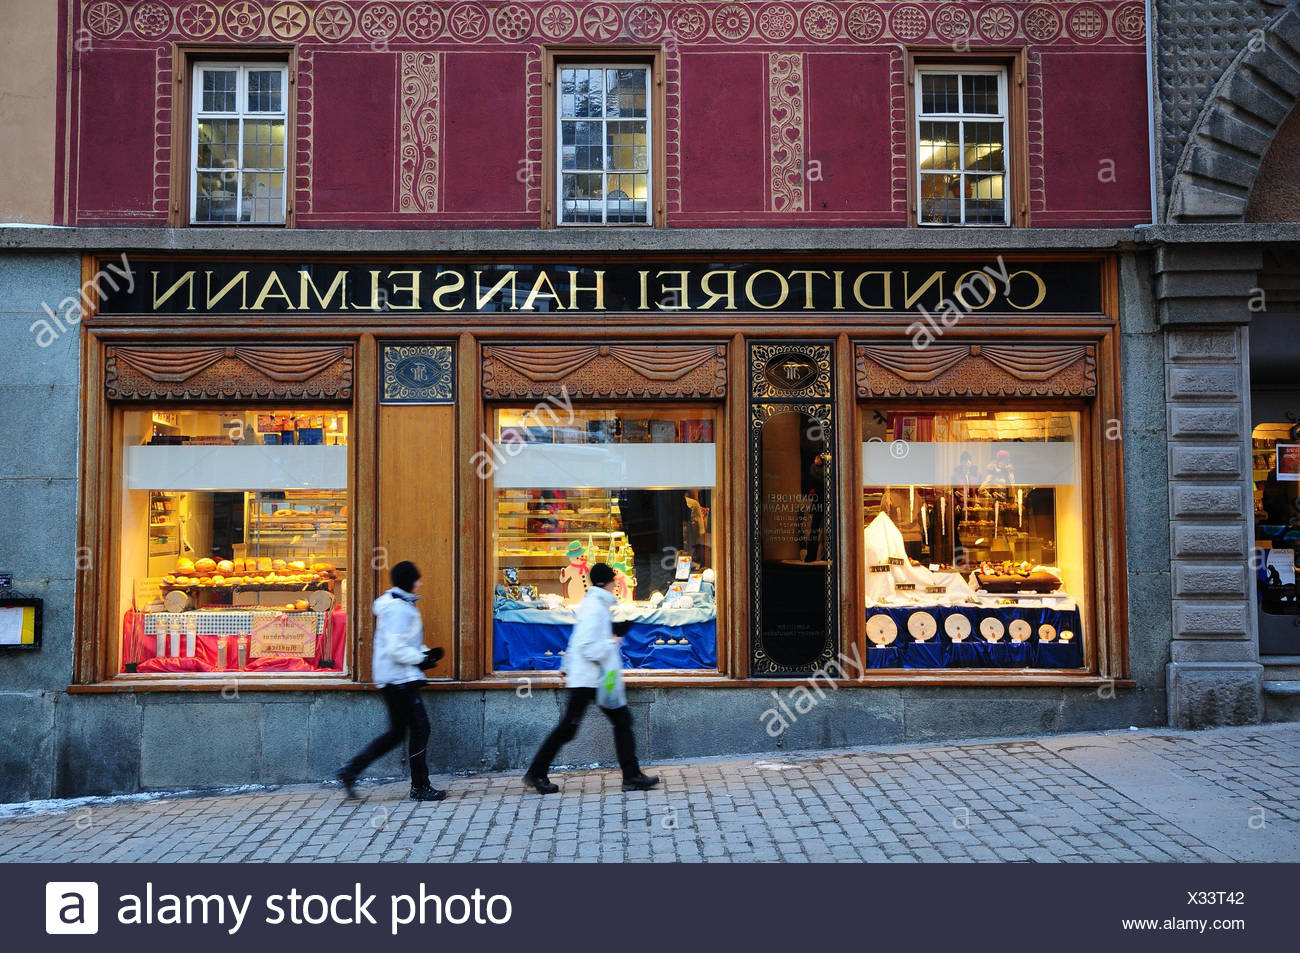 Confectionery, outside, passers-by, cafe, cafe house, gastronomy, Switzerland, Graubuenden, the Engadine, traditional house, Hanselmann, - Stock Image